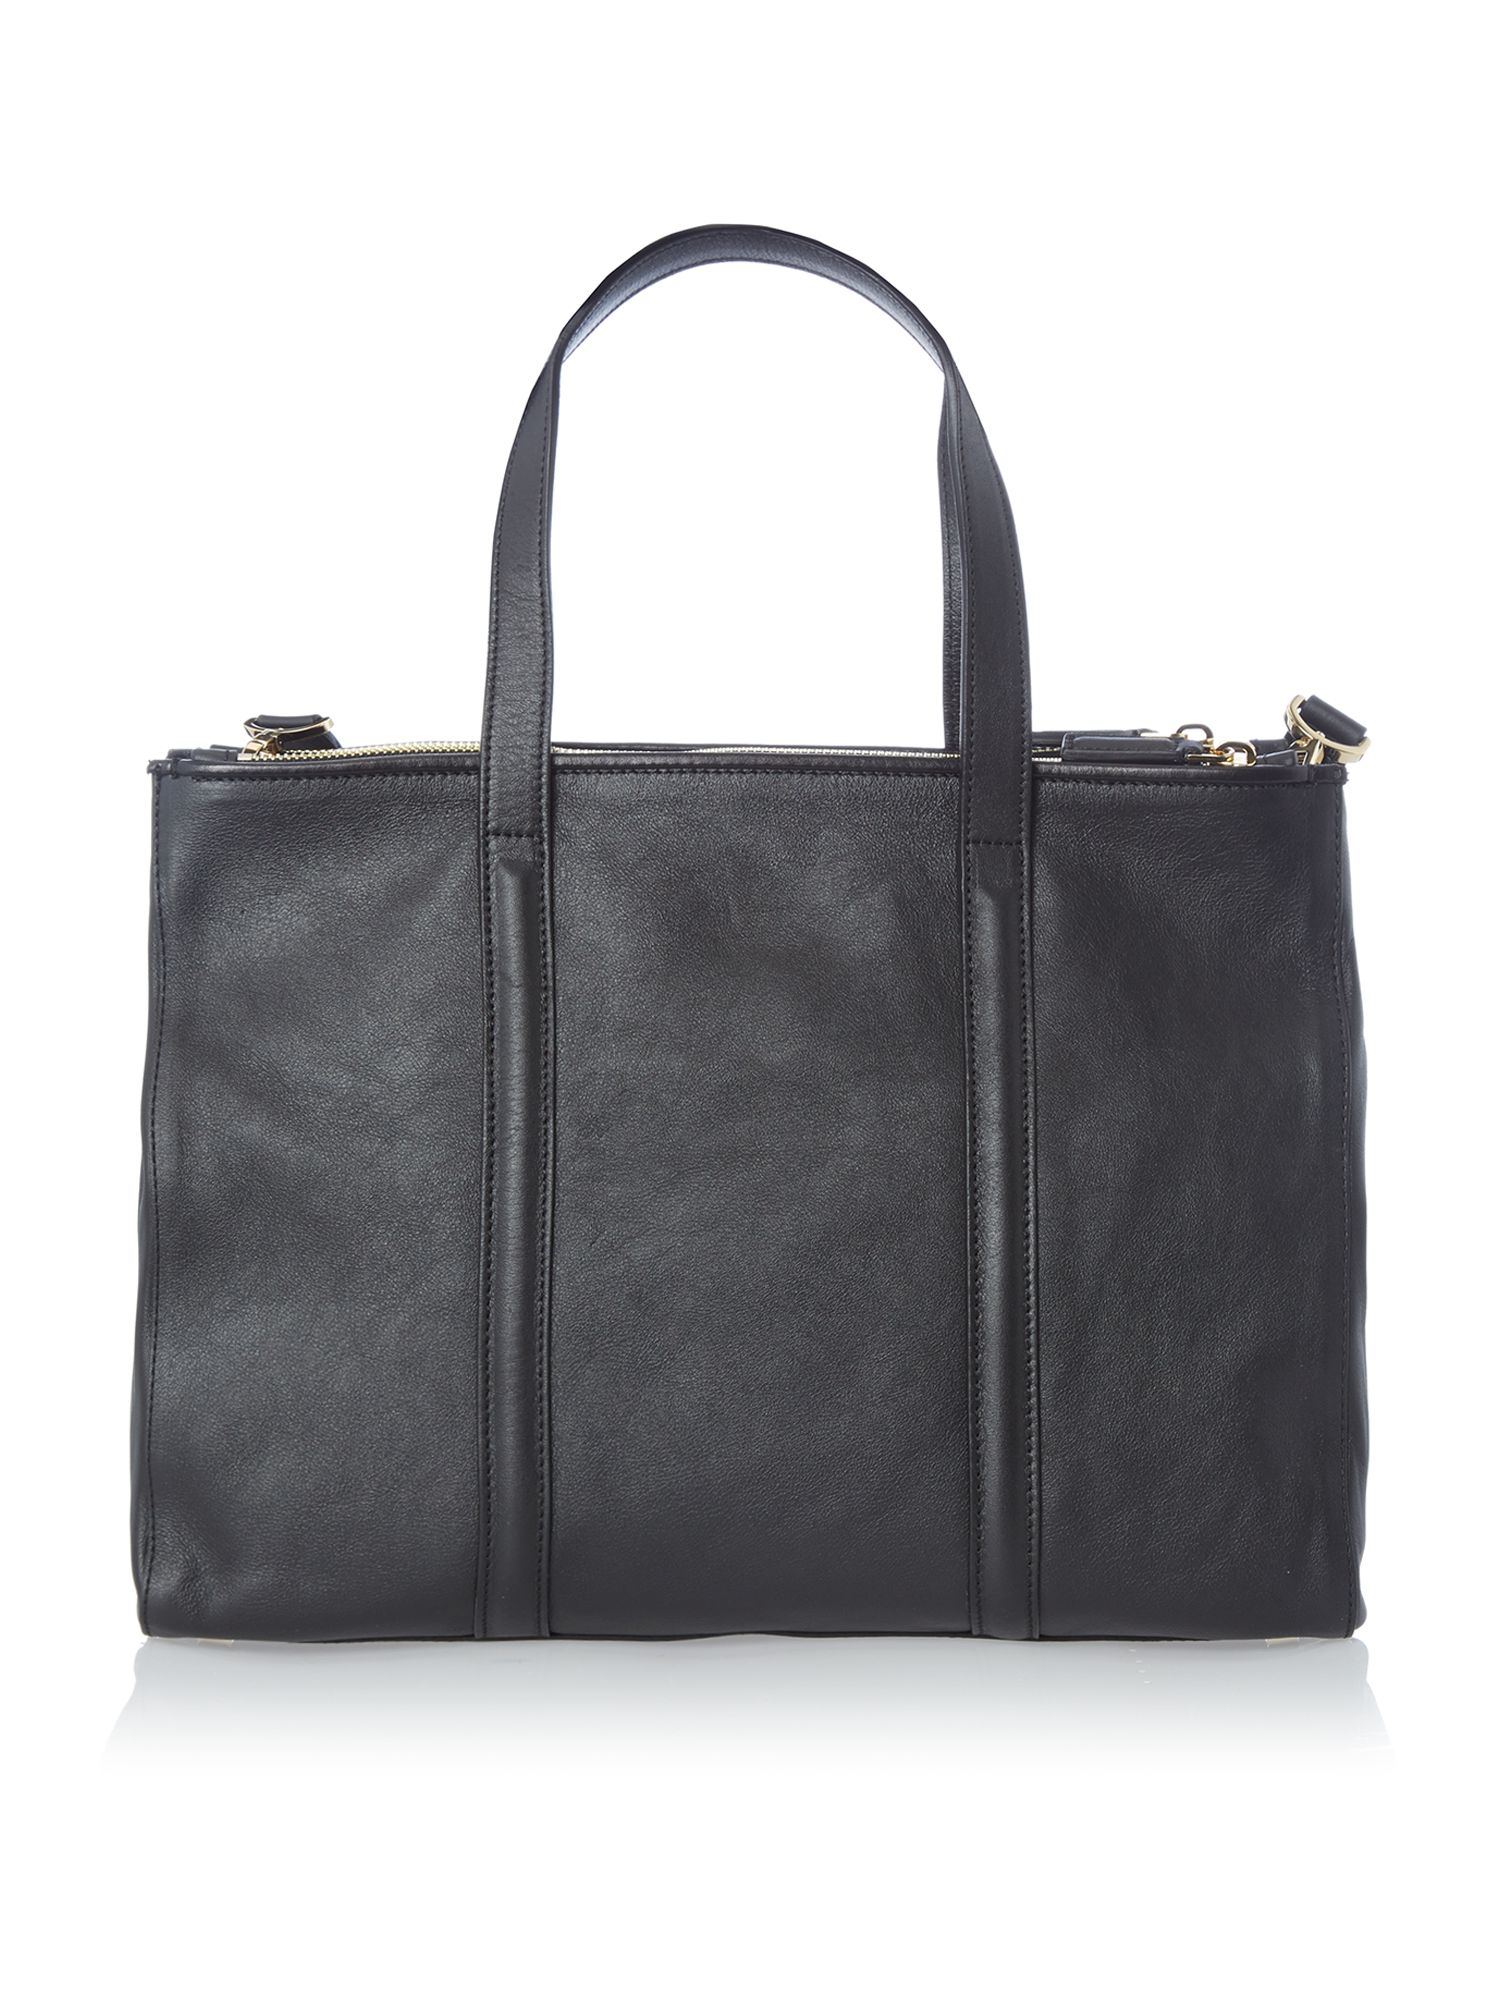 Textured Leather black woven tote bag